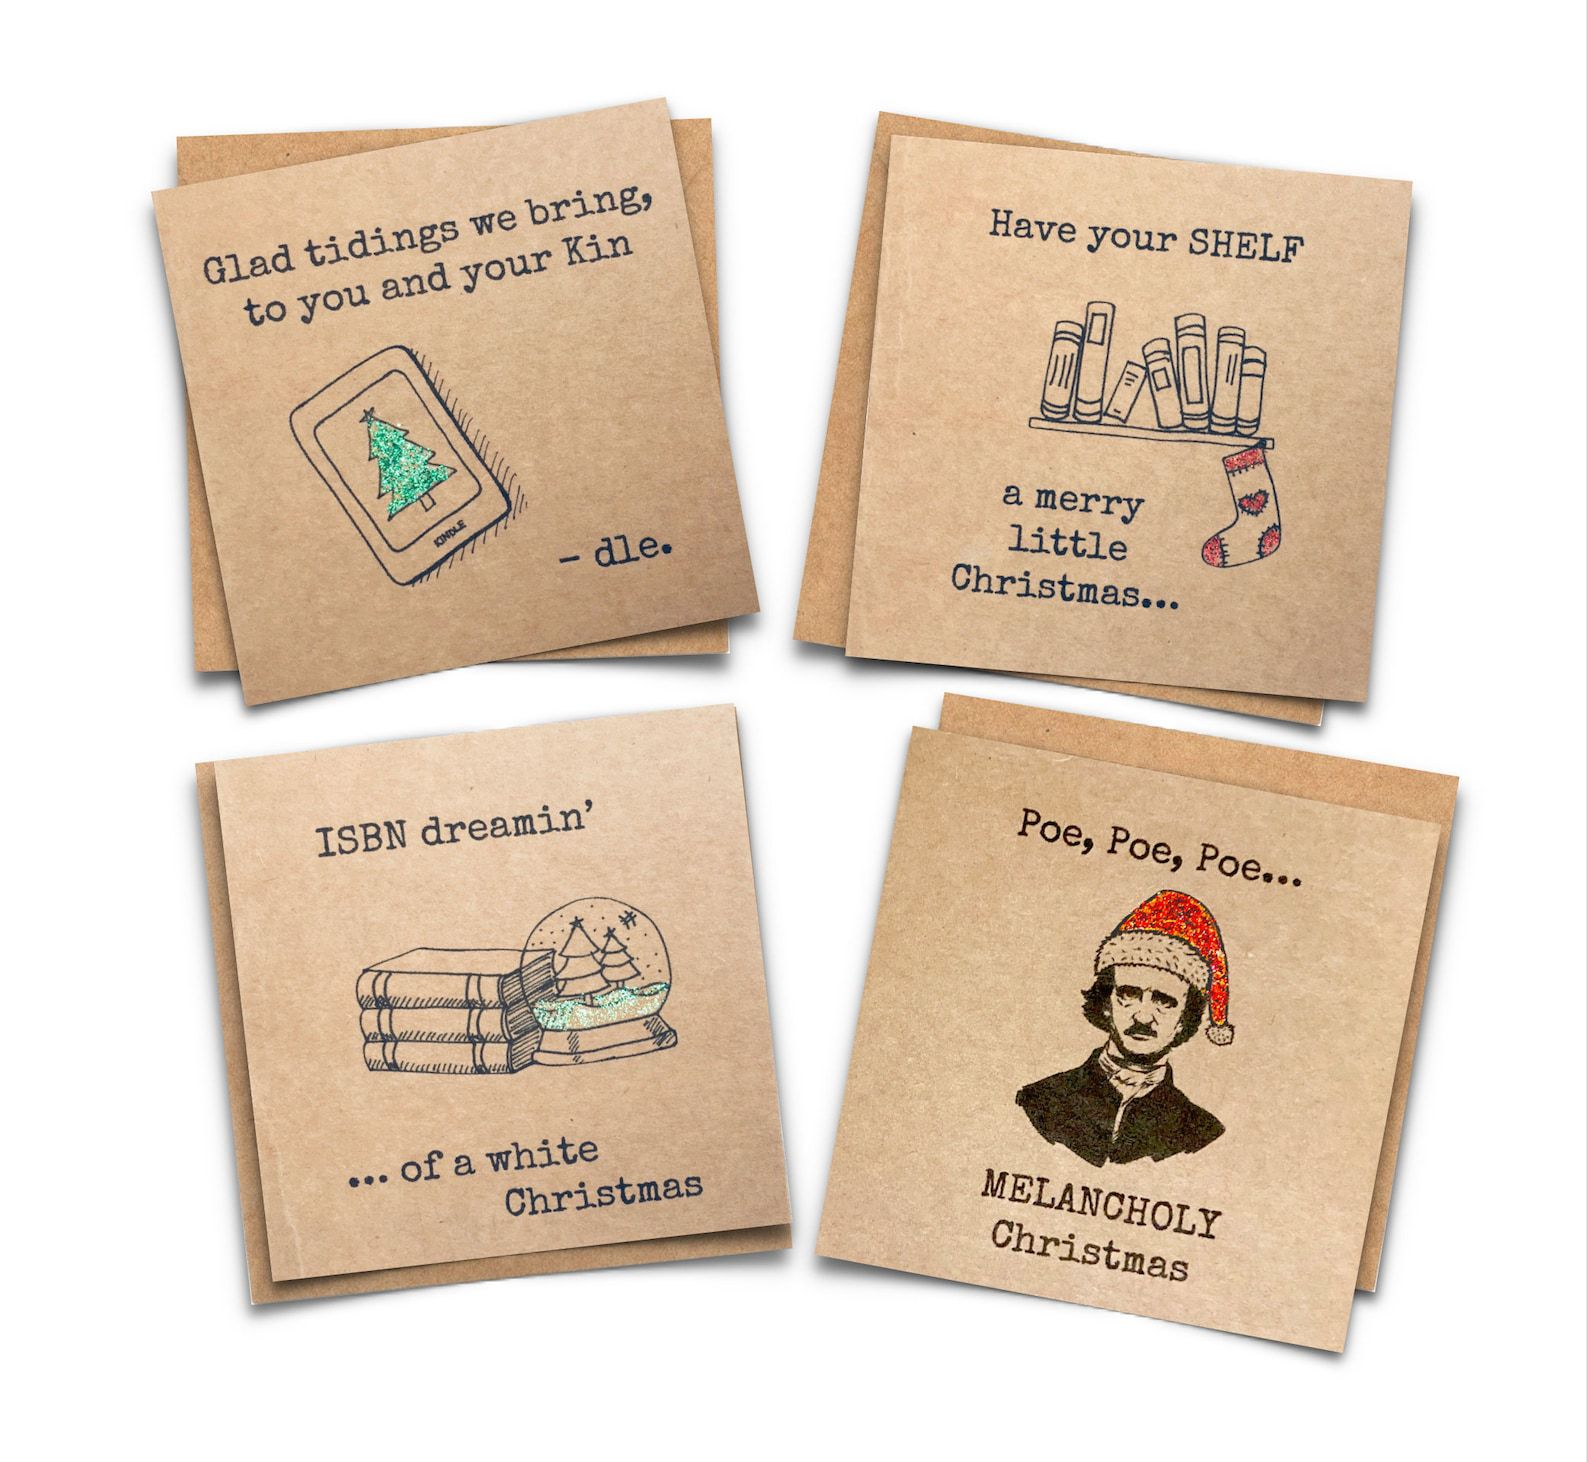 Four square craft paper cards with the following puns: Galt tidings we bring to you and your Kin-dle, Have Your Shelf a Merry Little Christmas, ISBN dreaming of a White Christmas, and Poe, Poe, Poe Melancholy Christmas.